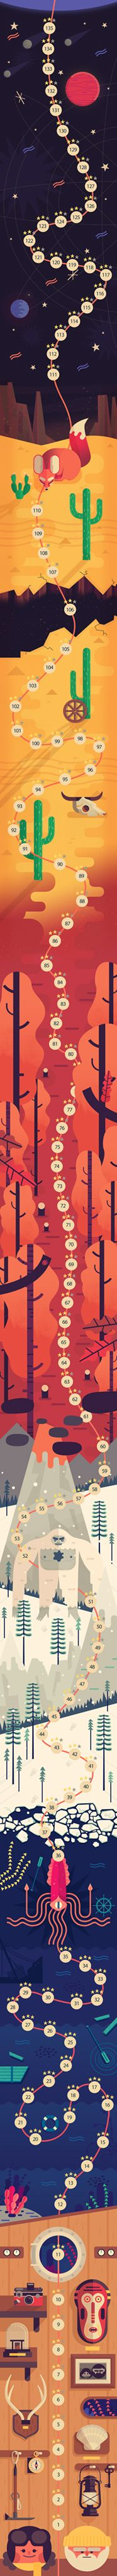 TwoDots UI- Owen Davey. Davey creates intrigue through the geometric abstraction of the animals, coupled with a sense of rhythm through repetition. Colour is also used successfully, using tonal variation to suggest depth and atmosphere. The gradients are a nice touch- helps transition from one environment to the other.